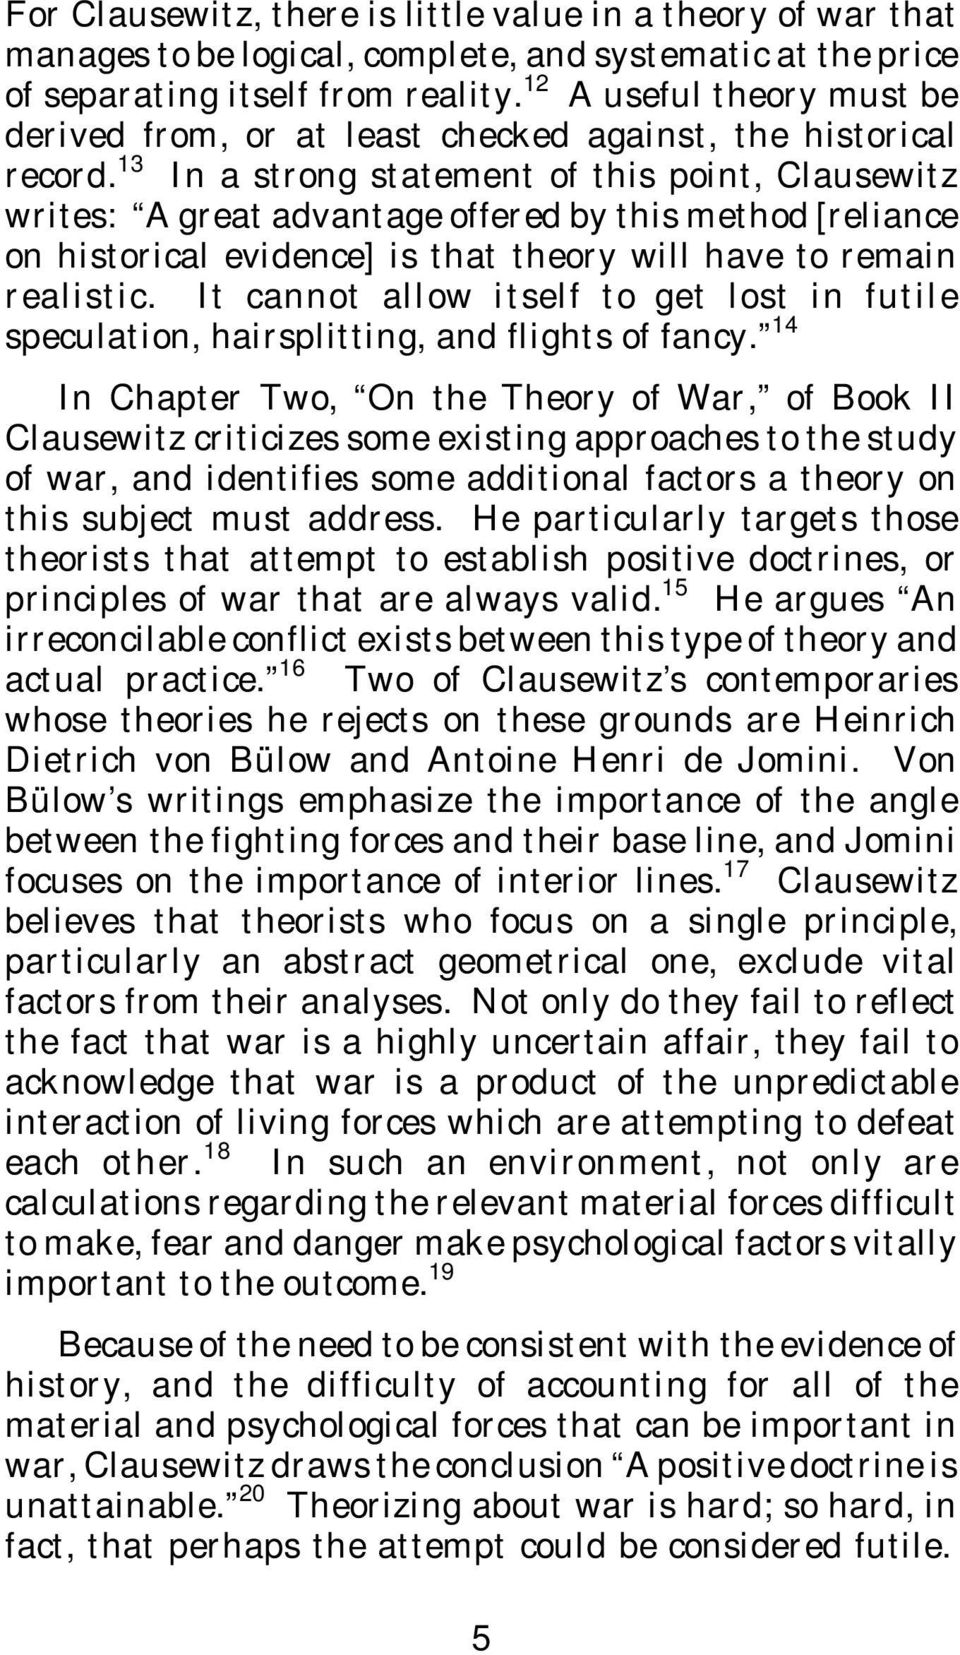 13 In a strong statement of this point, Clausewitz writes: A great advantage offered by this method [reliance on historical evidence] is that theory will have to remain realistic.